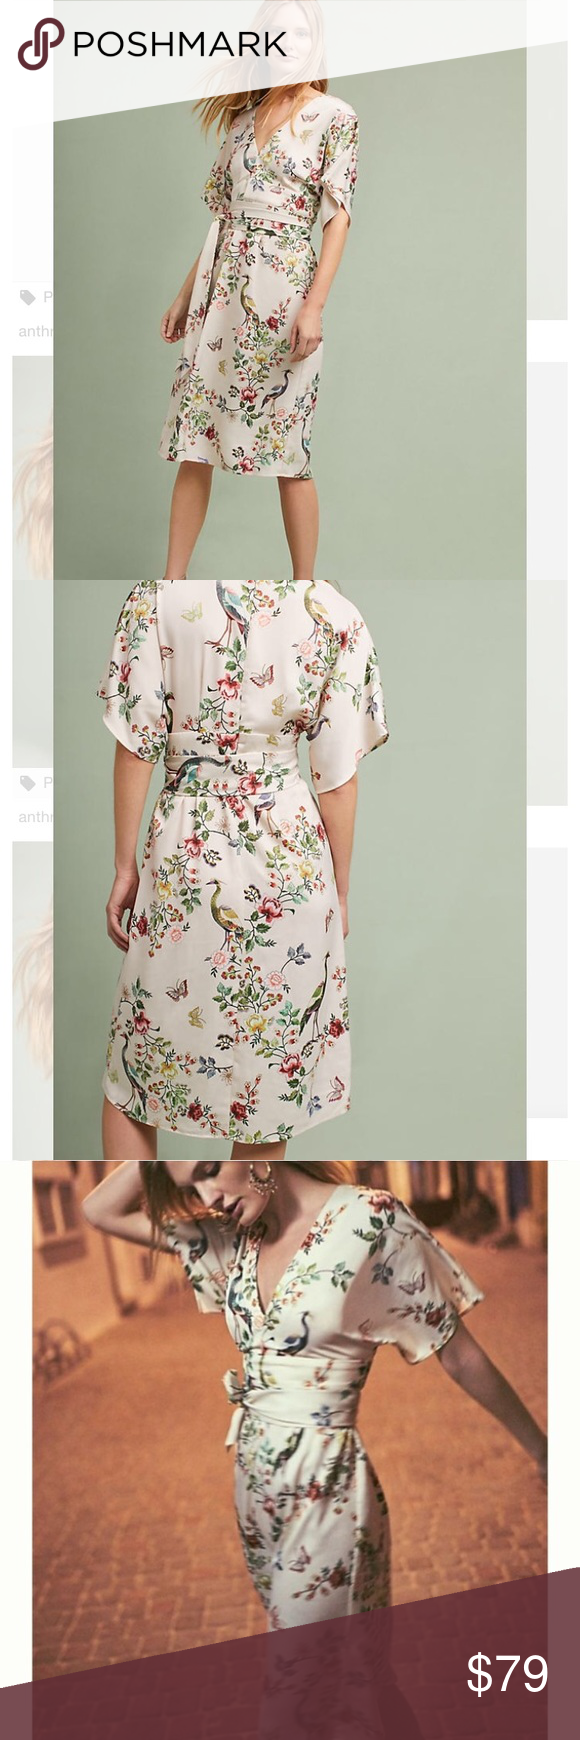 d3e31b9ce318b Anthropologie dRA avian kimono midi dress NWT size 4 Anthropologie Dresses  Midi